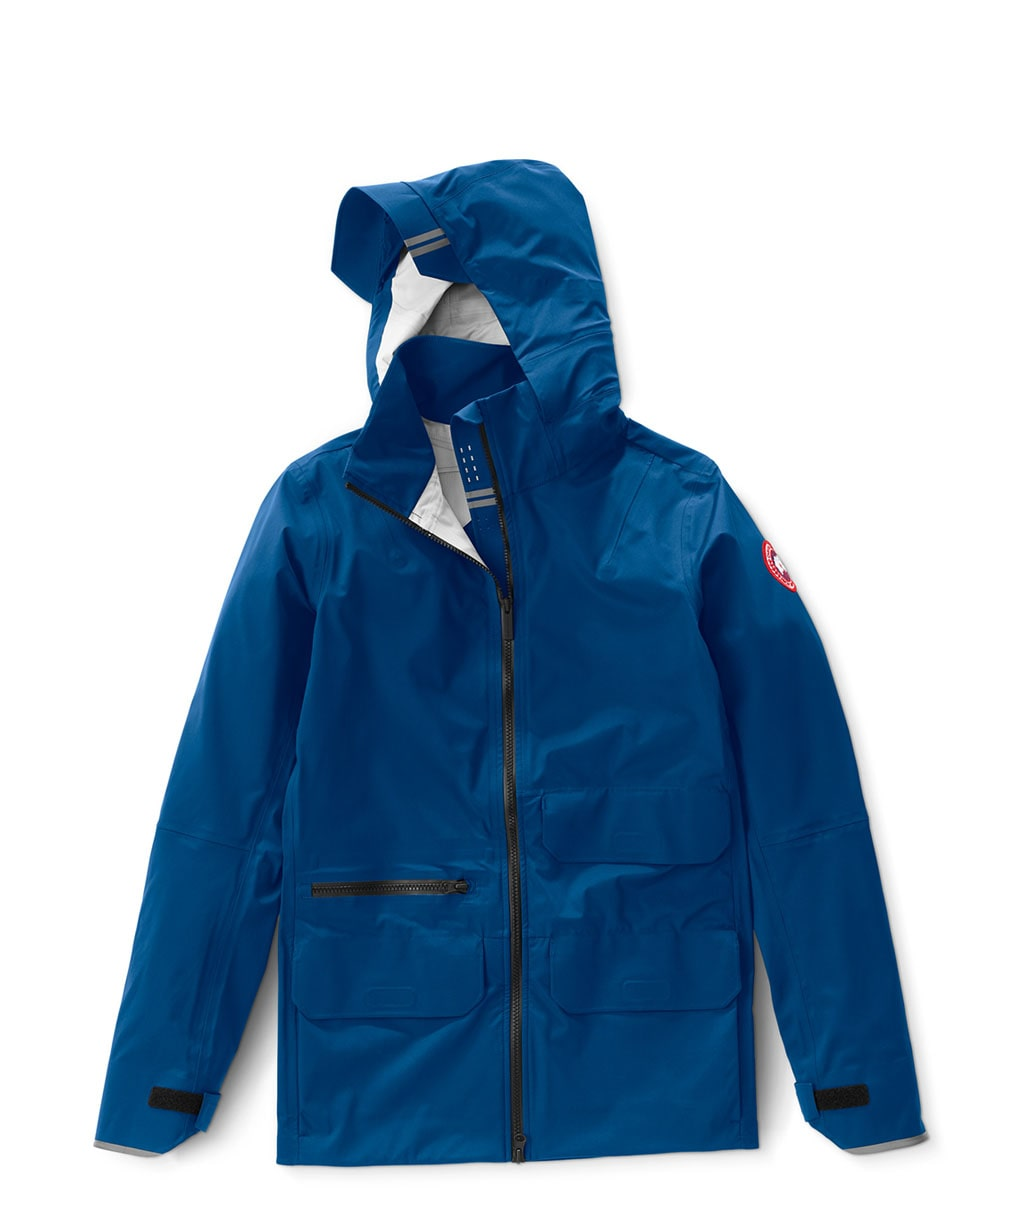 PACIFICA JACKET (W)